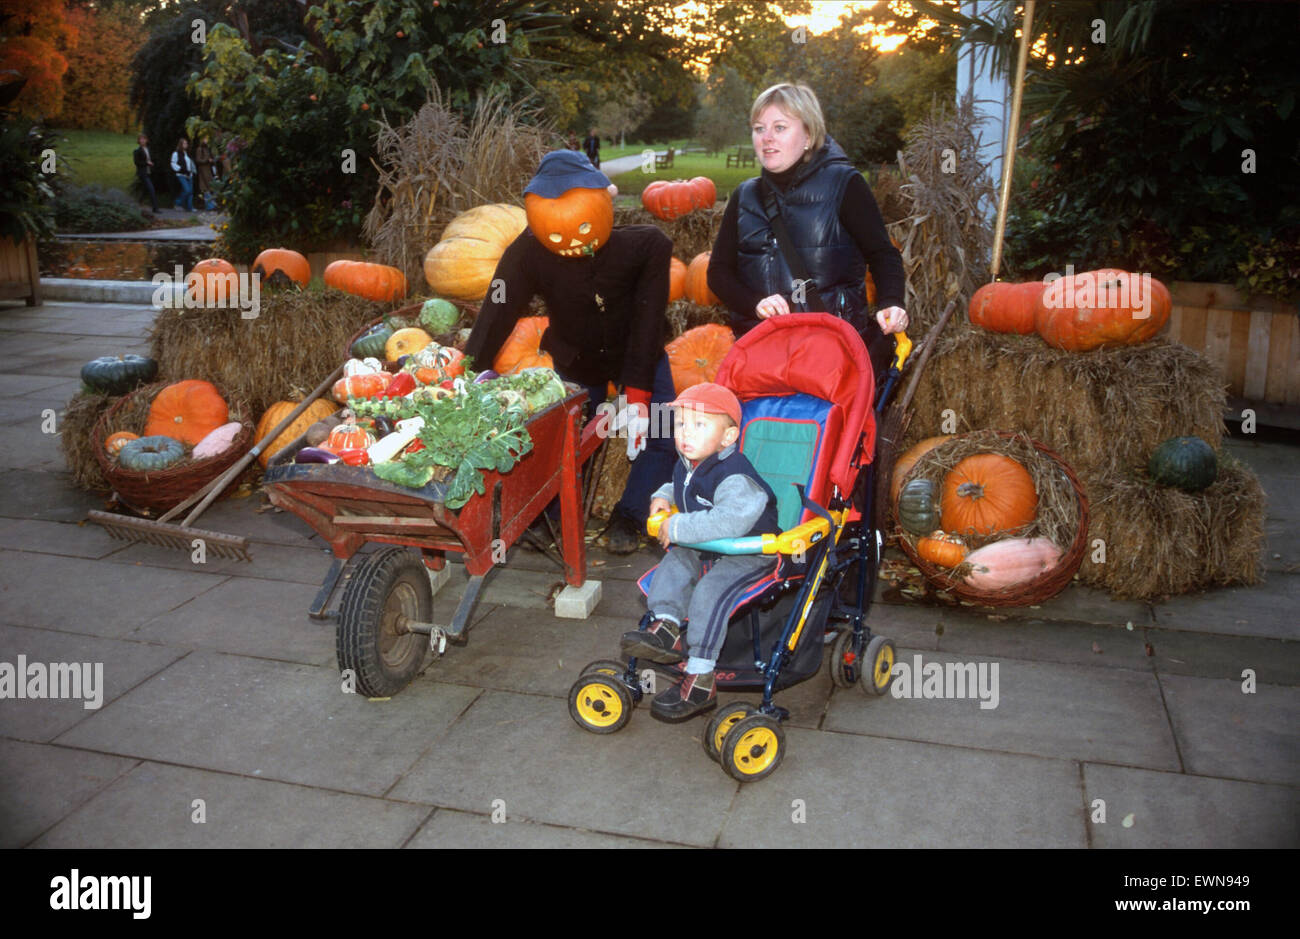 WOMAN WITH CHILD POSES WITH PUMKINS AT KEW GARDENS ENTRANCE - Stock Image